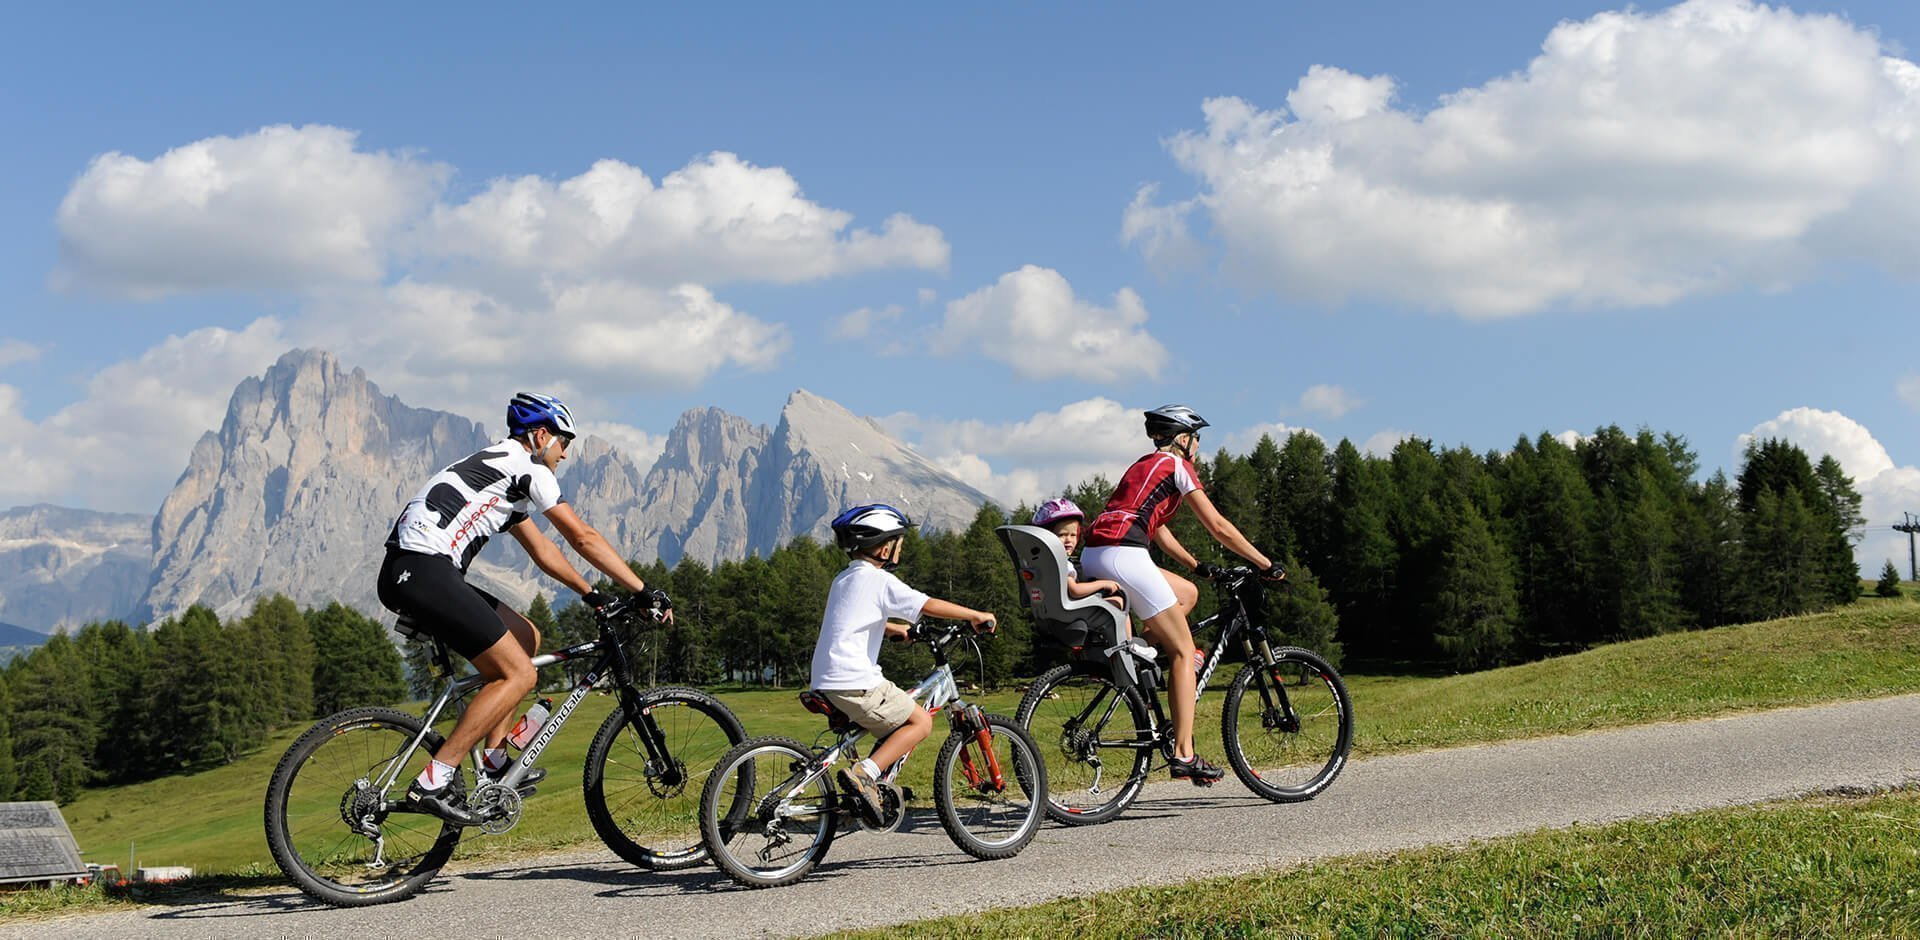 Vacanze mountain bike in Alto Adige